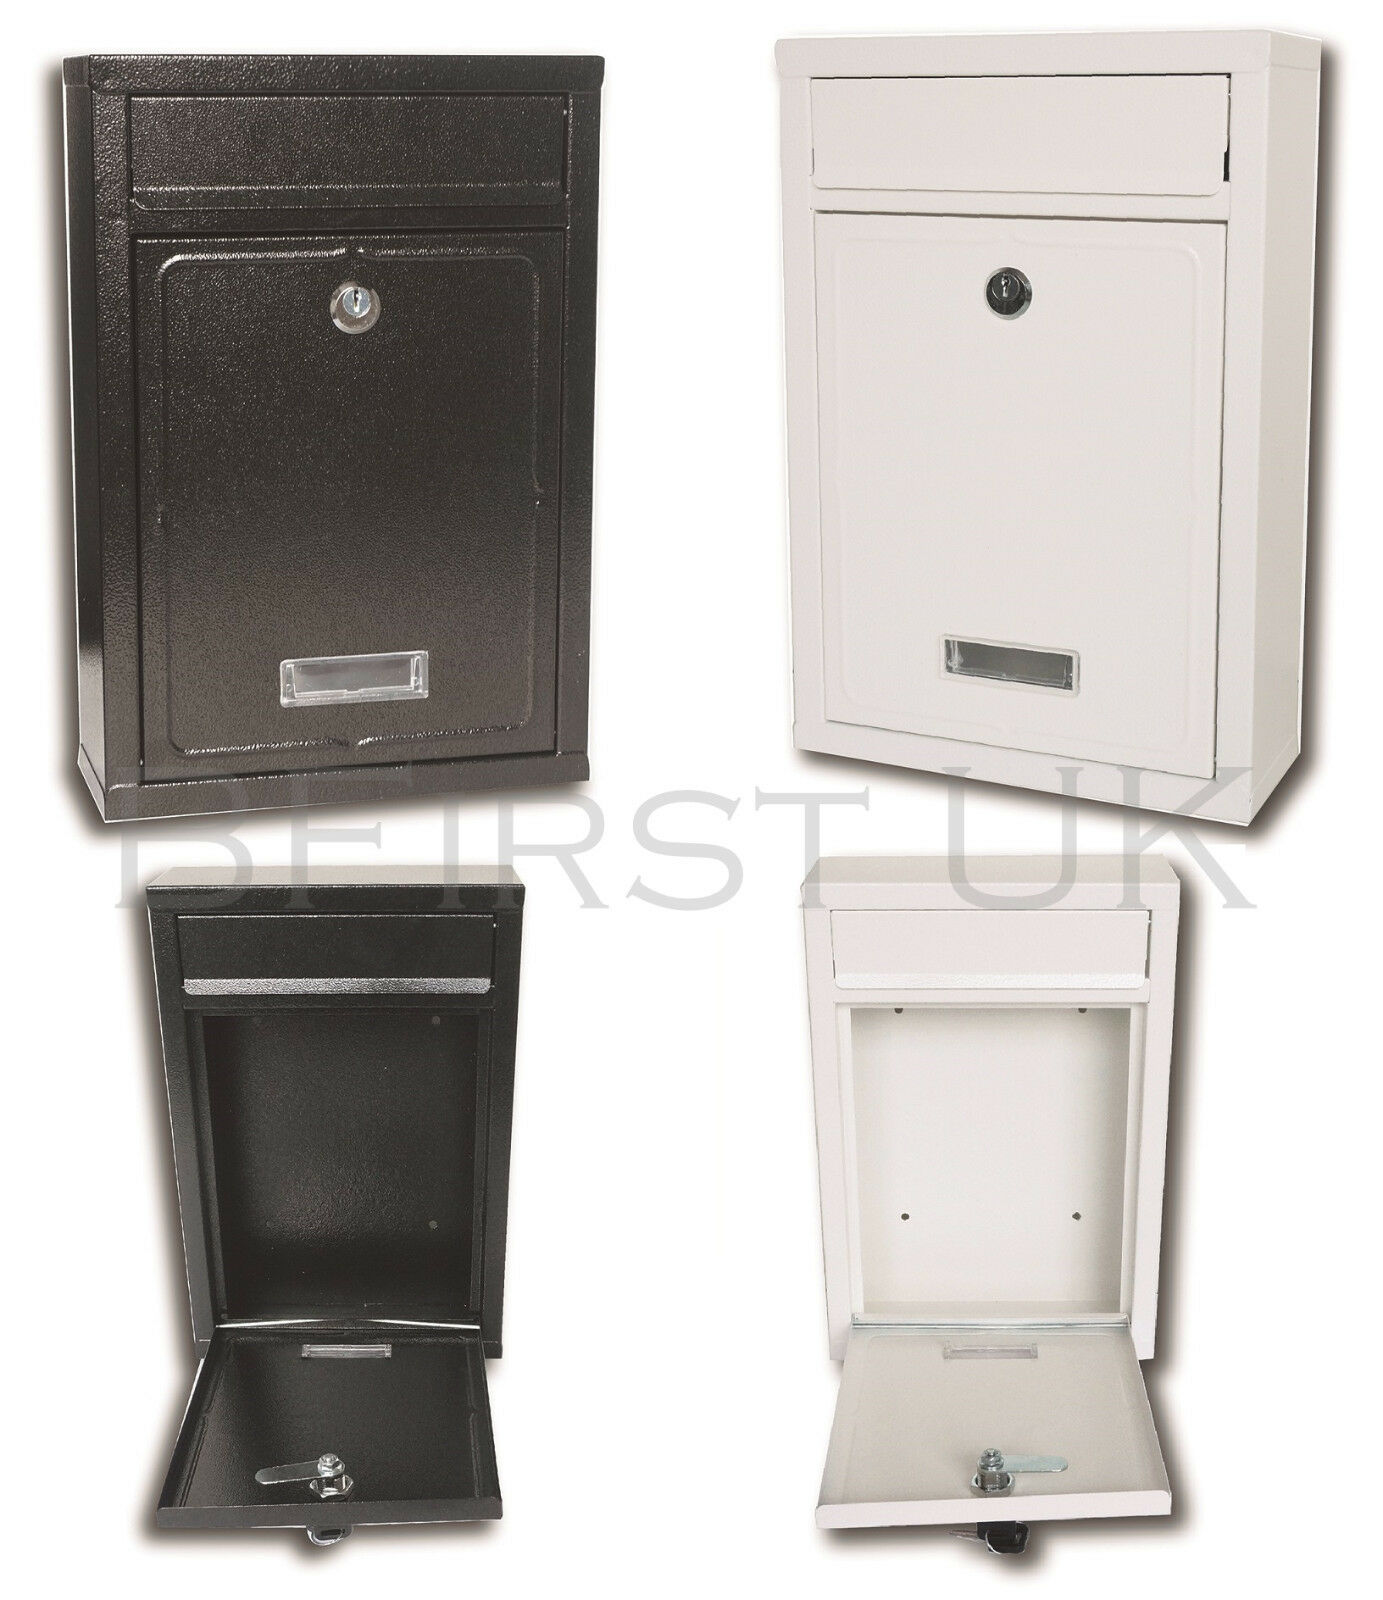 Water Proof Wall Mounted Mail Letter Post Box Mailbox